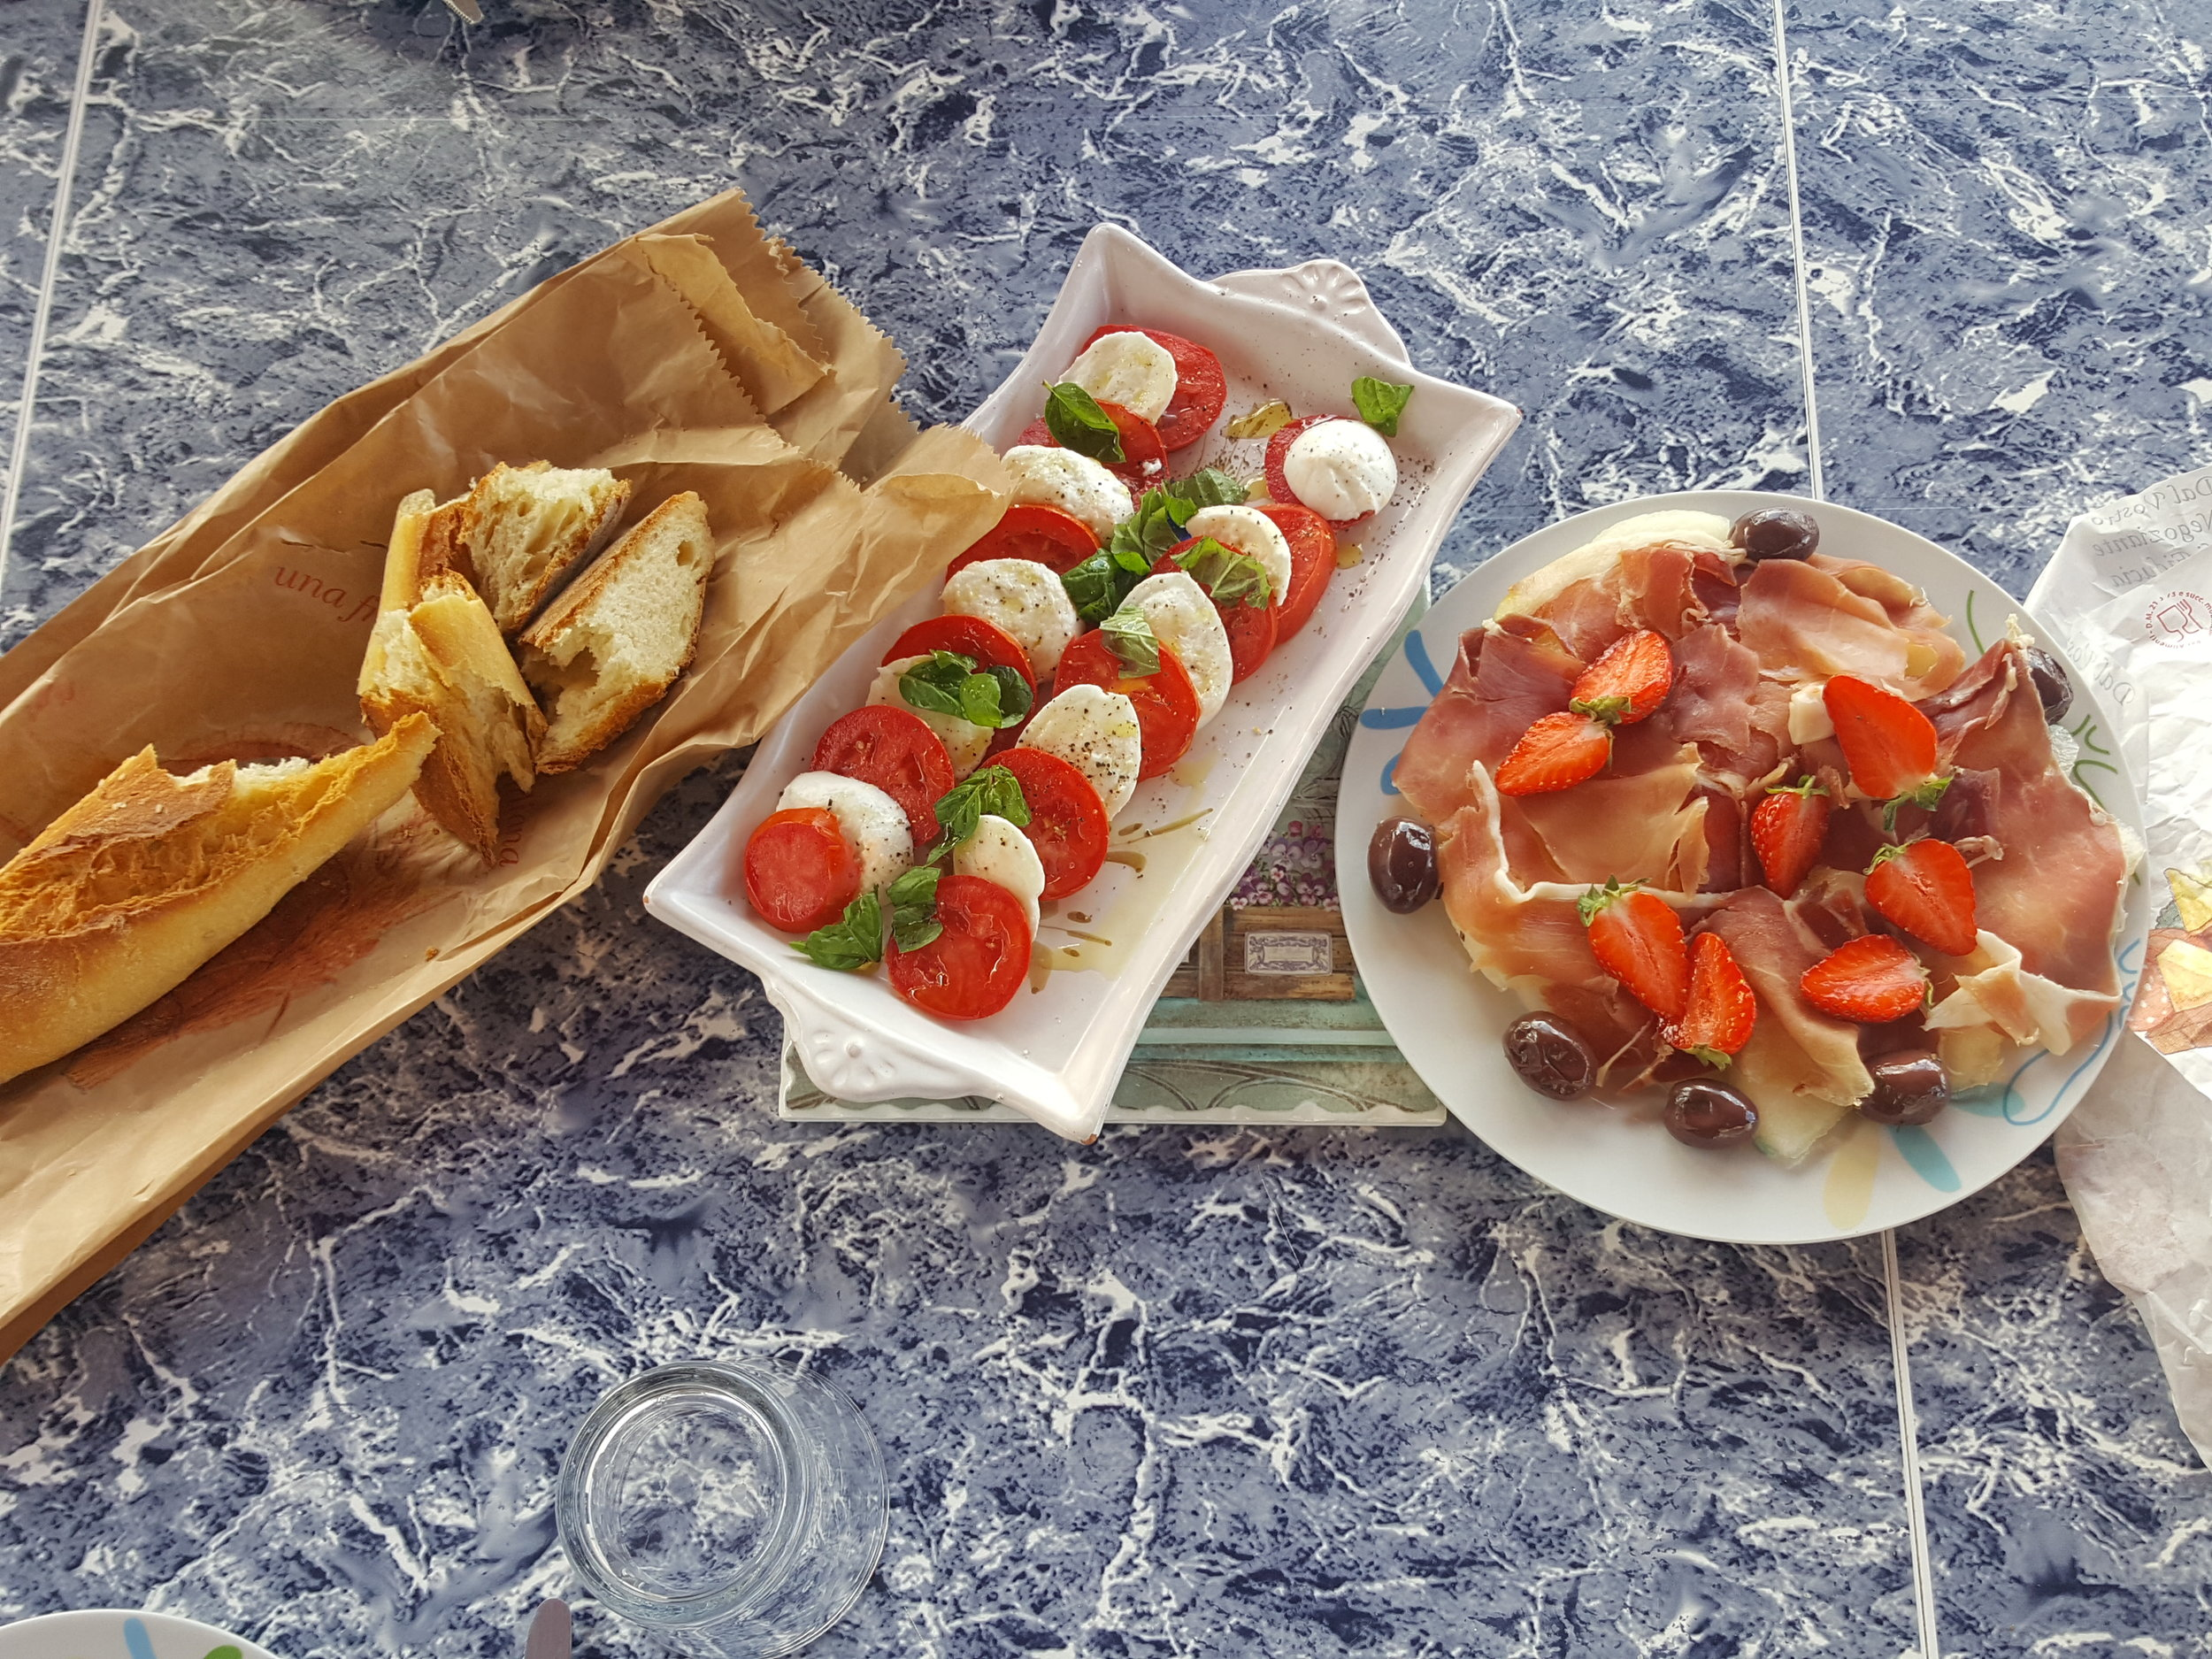 Antipasti, anyone?